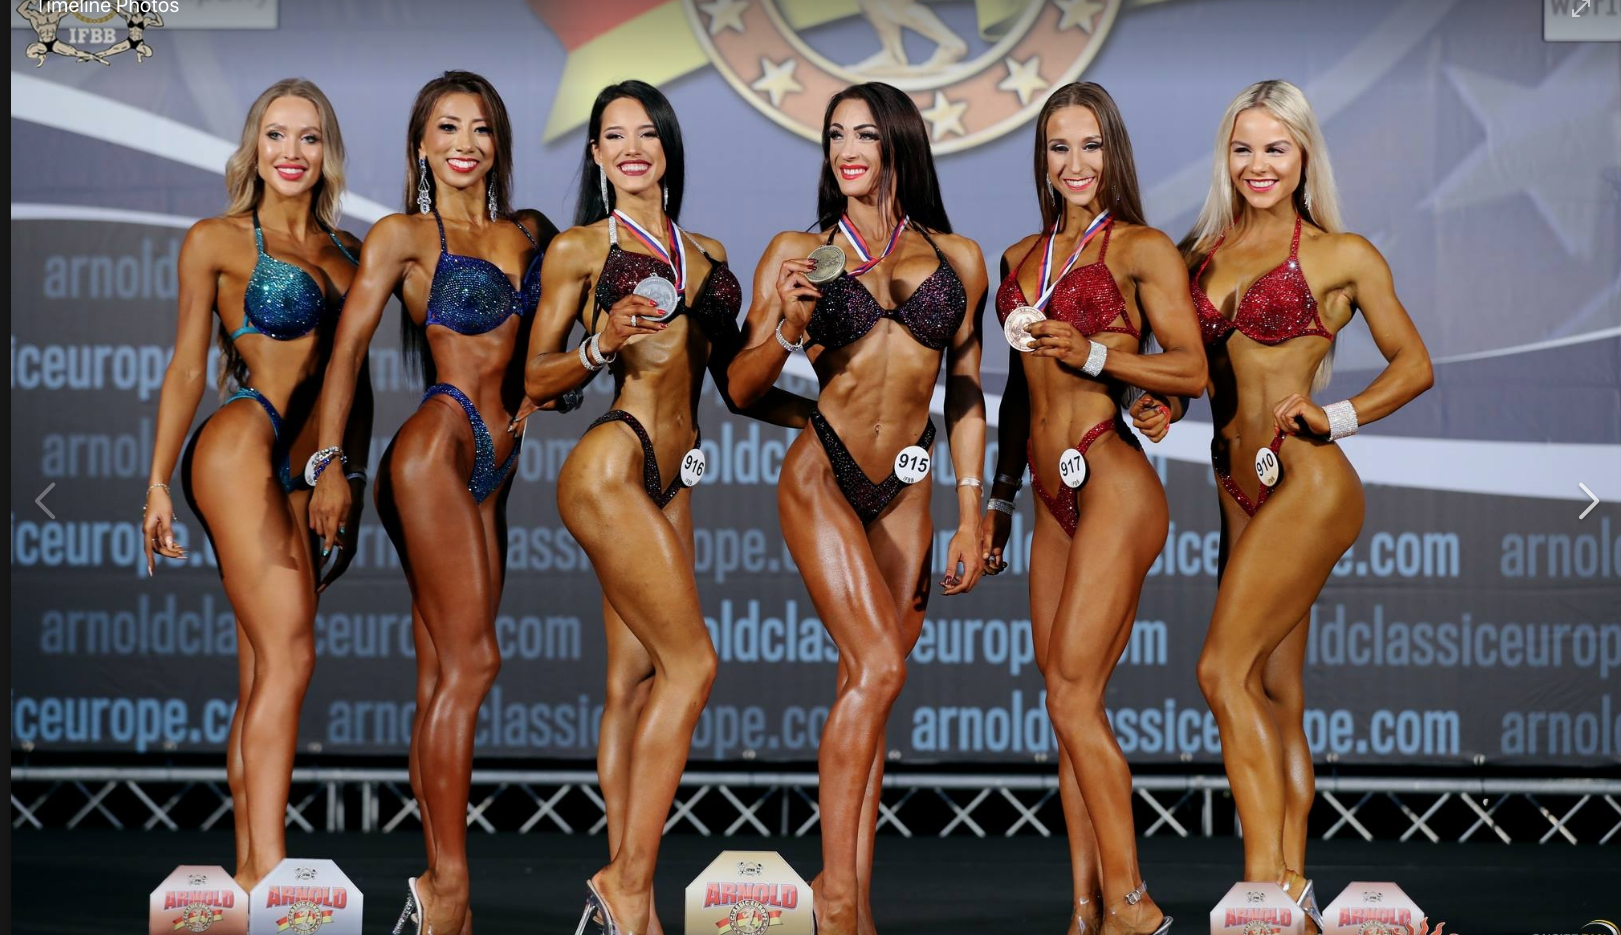 Marta (third from the left) displays her silver medal at the Arnold Classic Europe.